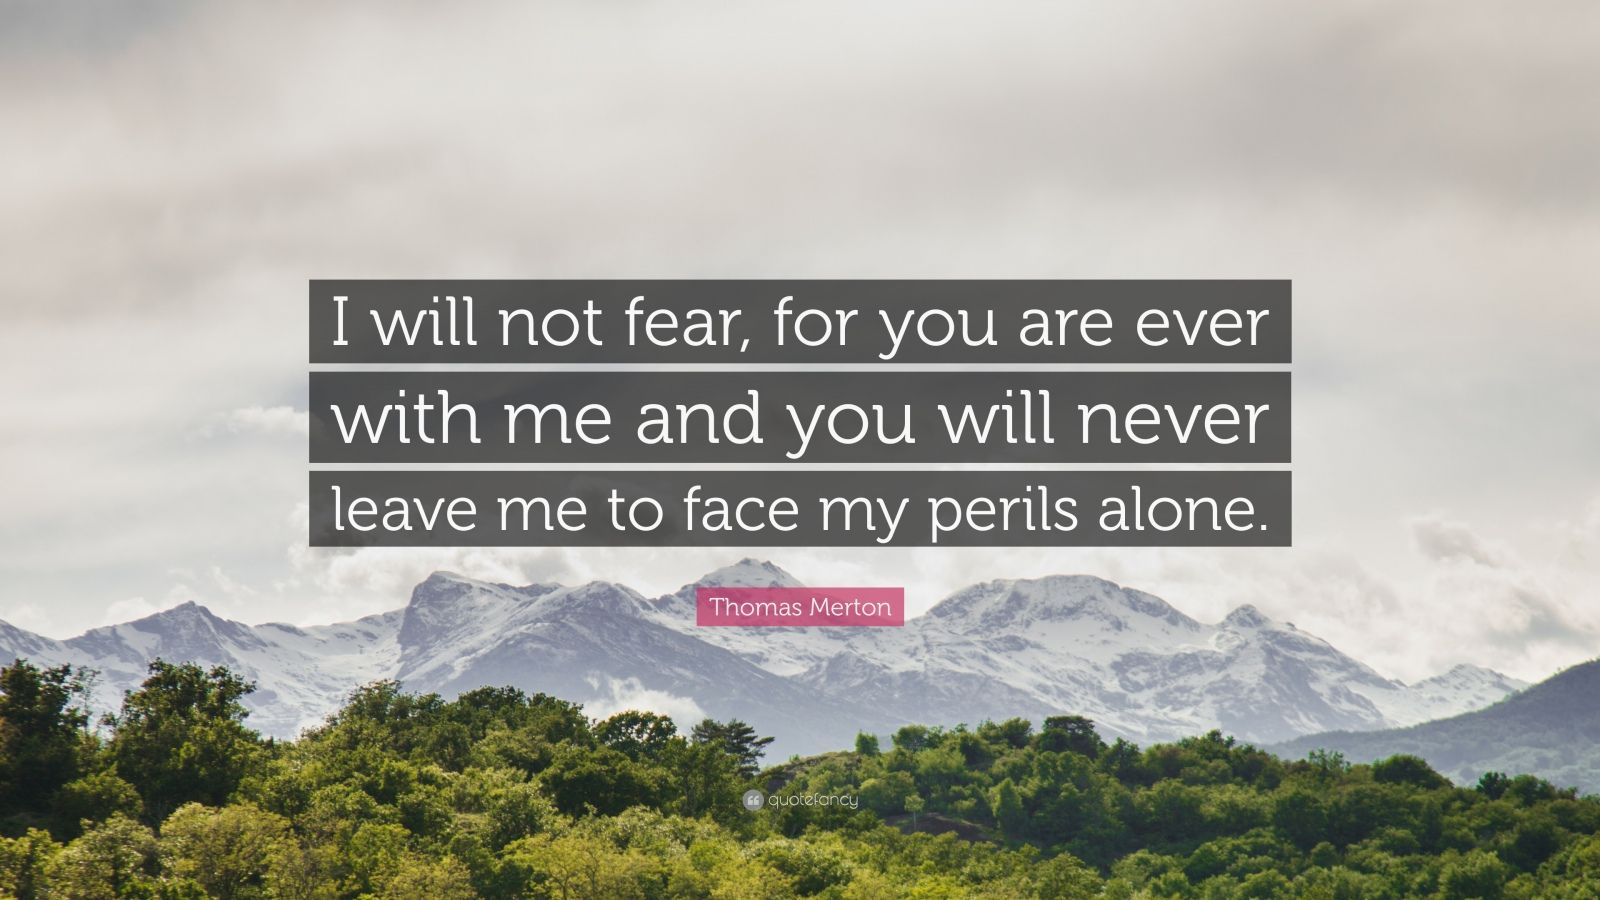 """Thomas Merton Quote: """"I will not fear, for you are ever with me and you will never leave me to face my perils alone."""""""